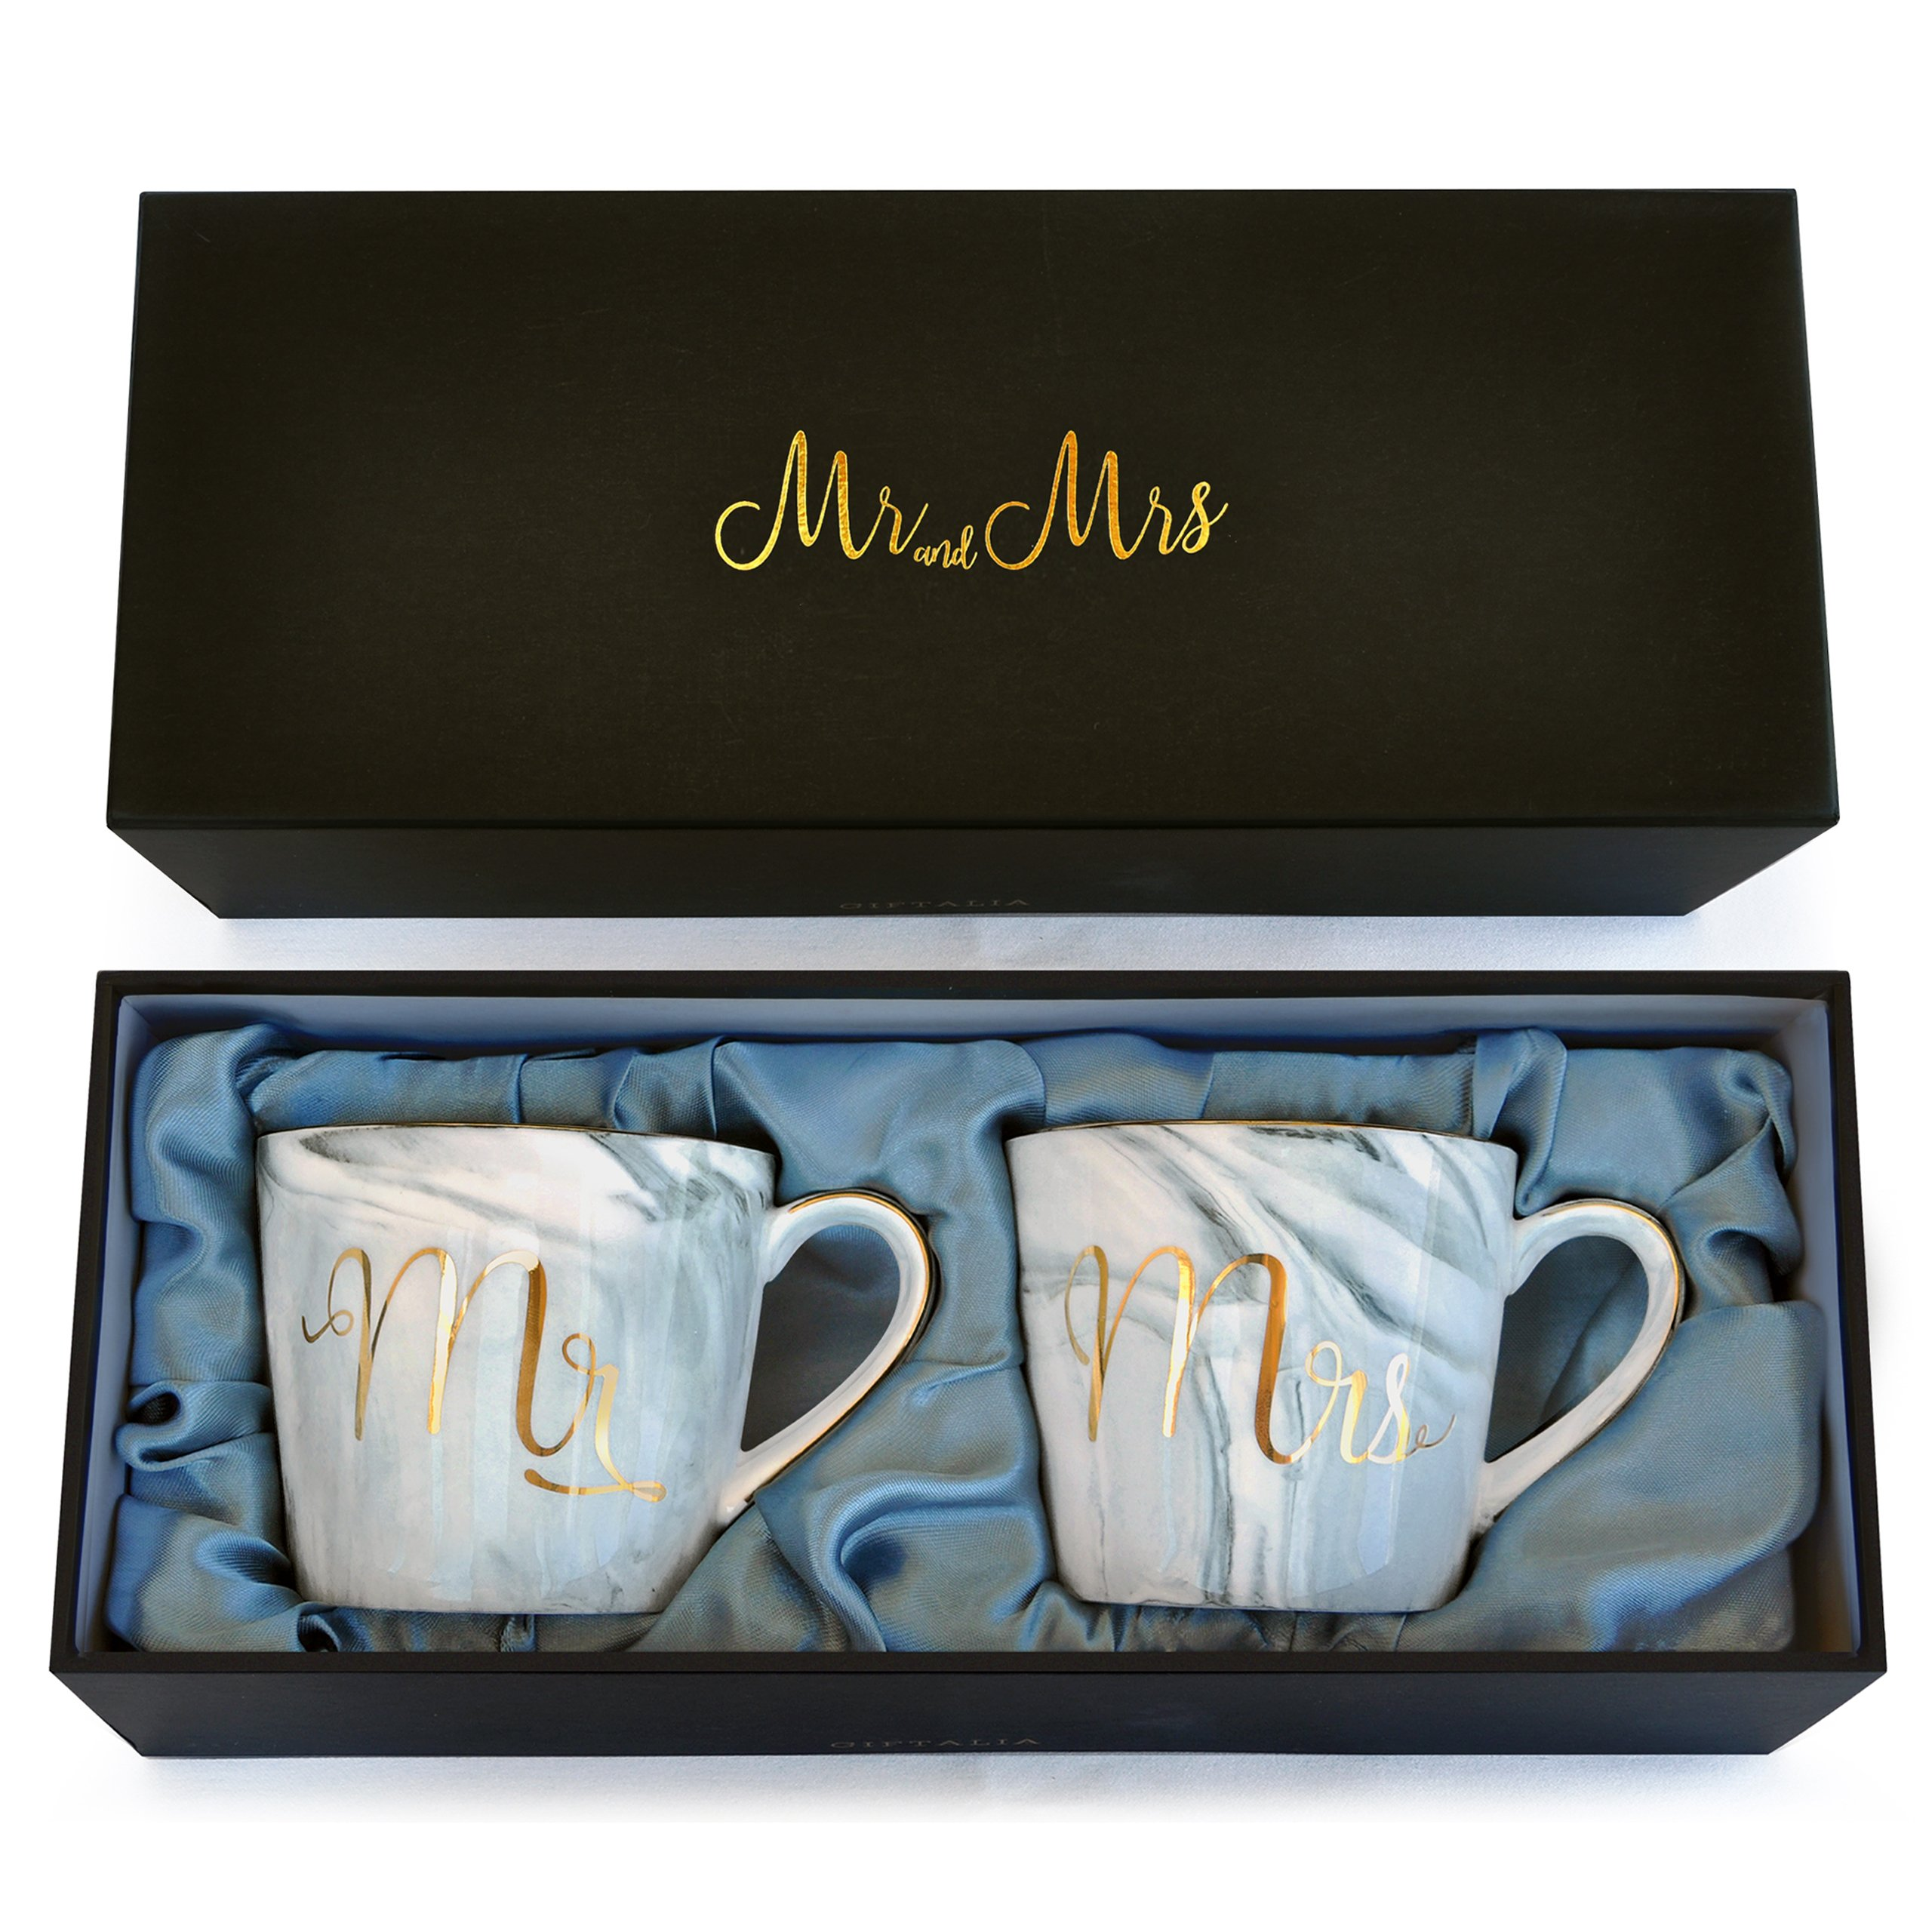 Wedding Gift - Mr and Mrs Mug Set - Classy and Elegant Gift Box with 2 Marble/Gold Tea or Coffee Cups - Beautiful Couples Anniversary, Engagement or Wedding Present for Bride and Groom - His and Her's